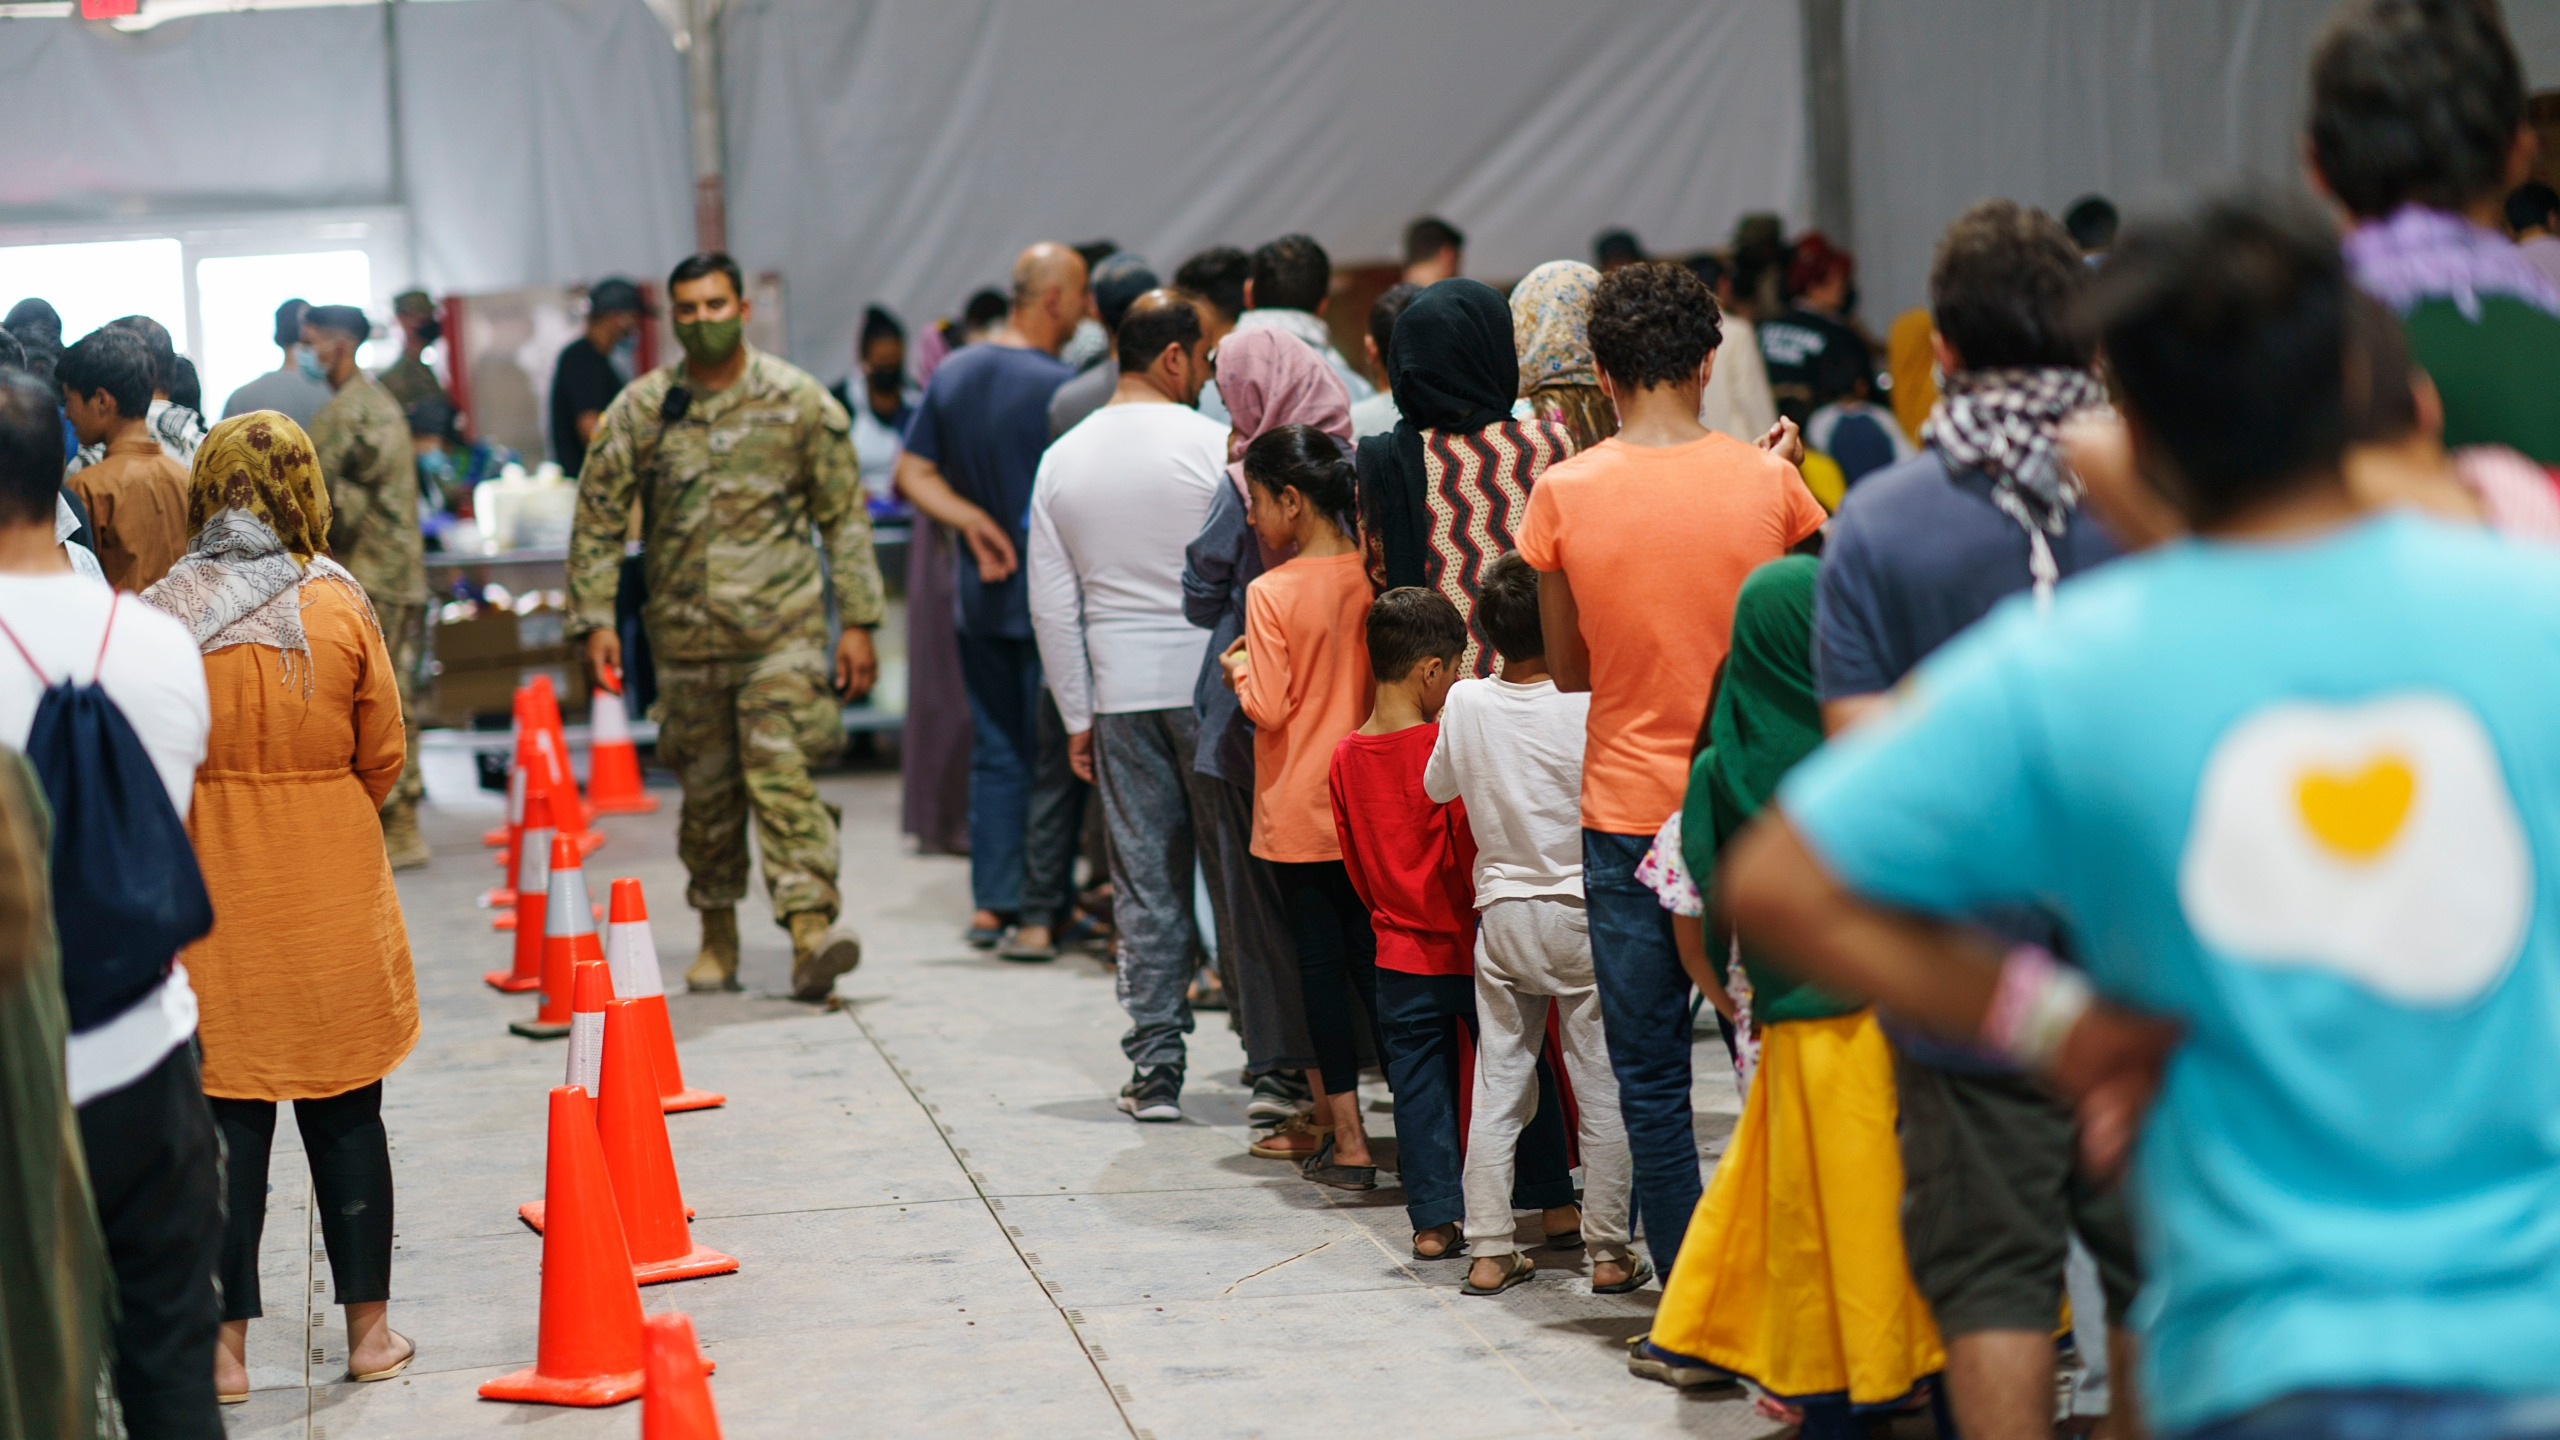 Afghan refugees line up for food in a dining hall at Fort Bliss' Doña Ana Village, in New Mexico, where they are being housed, on Sept. 10, 2021. (David Goldman / Associated Press)